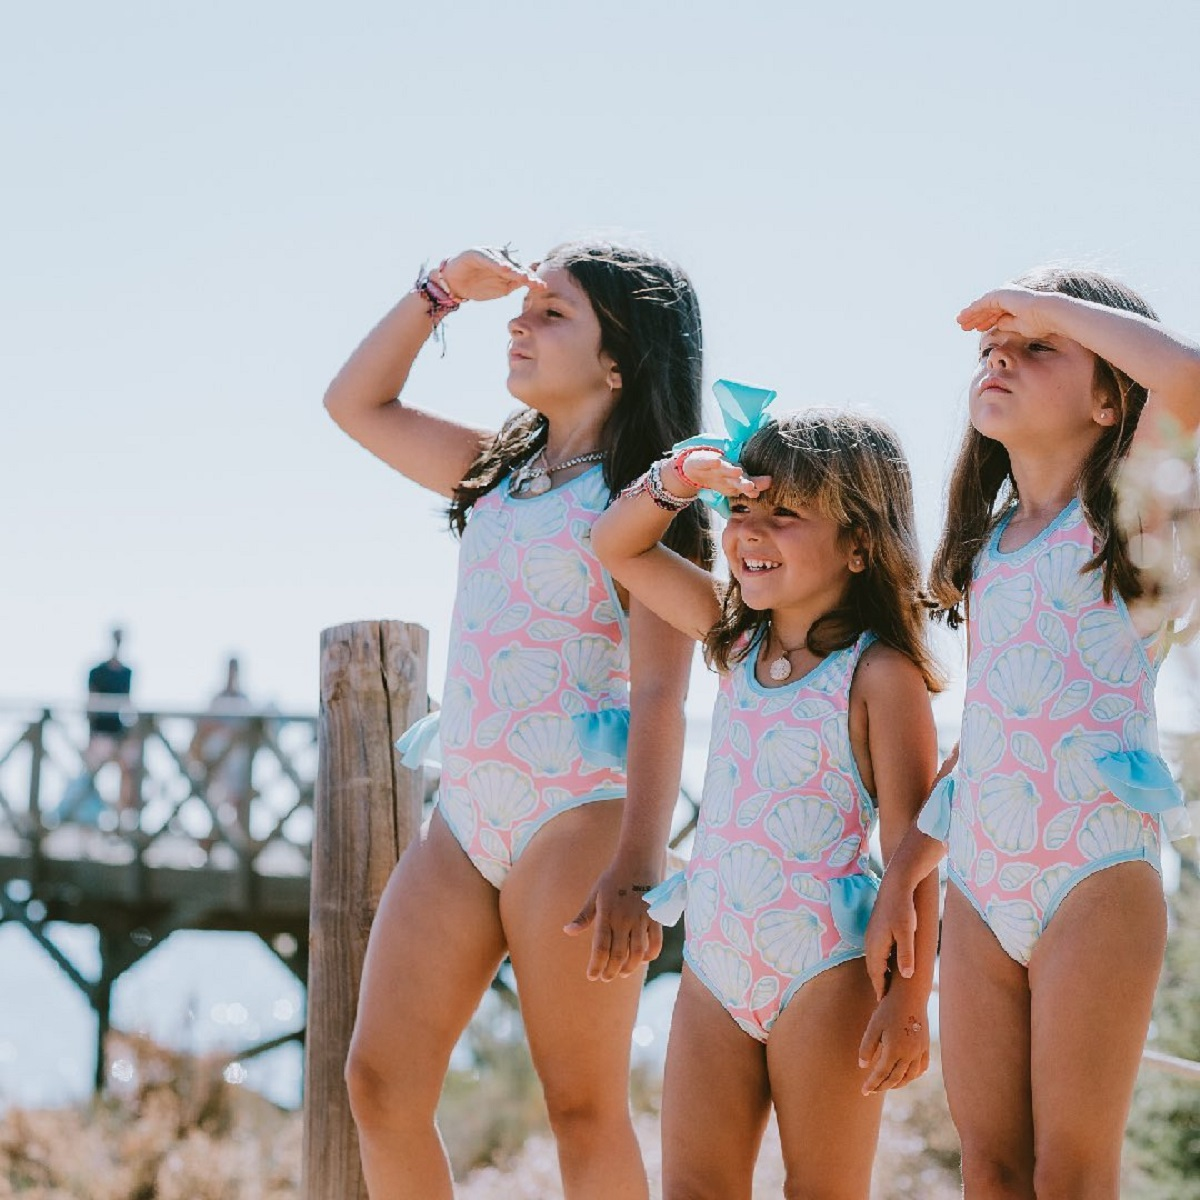 3 children at the beach wearing Sal & Pimenta swimwear